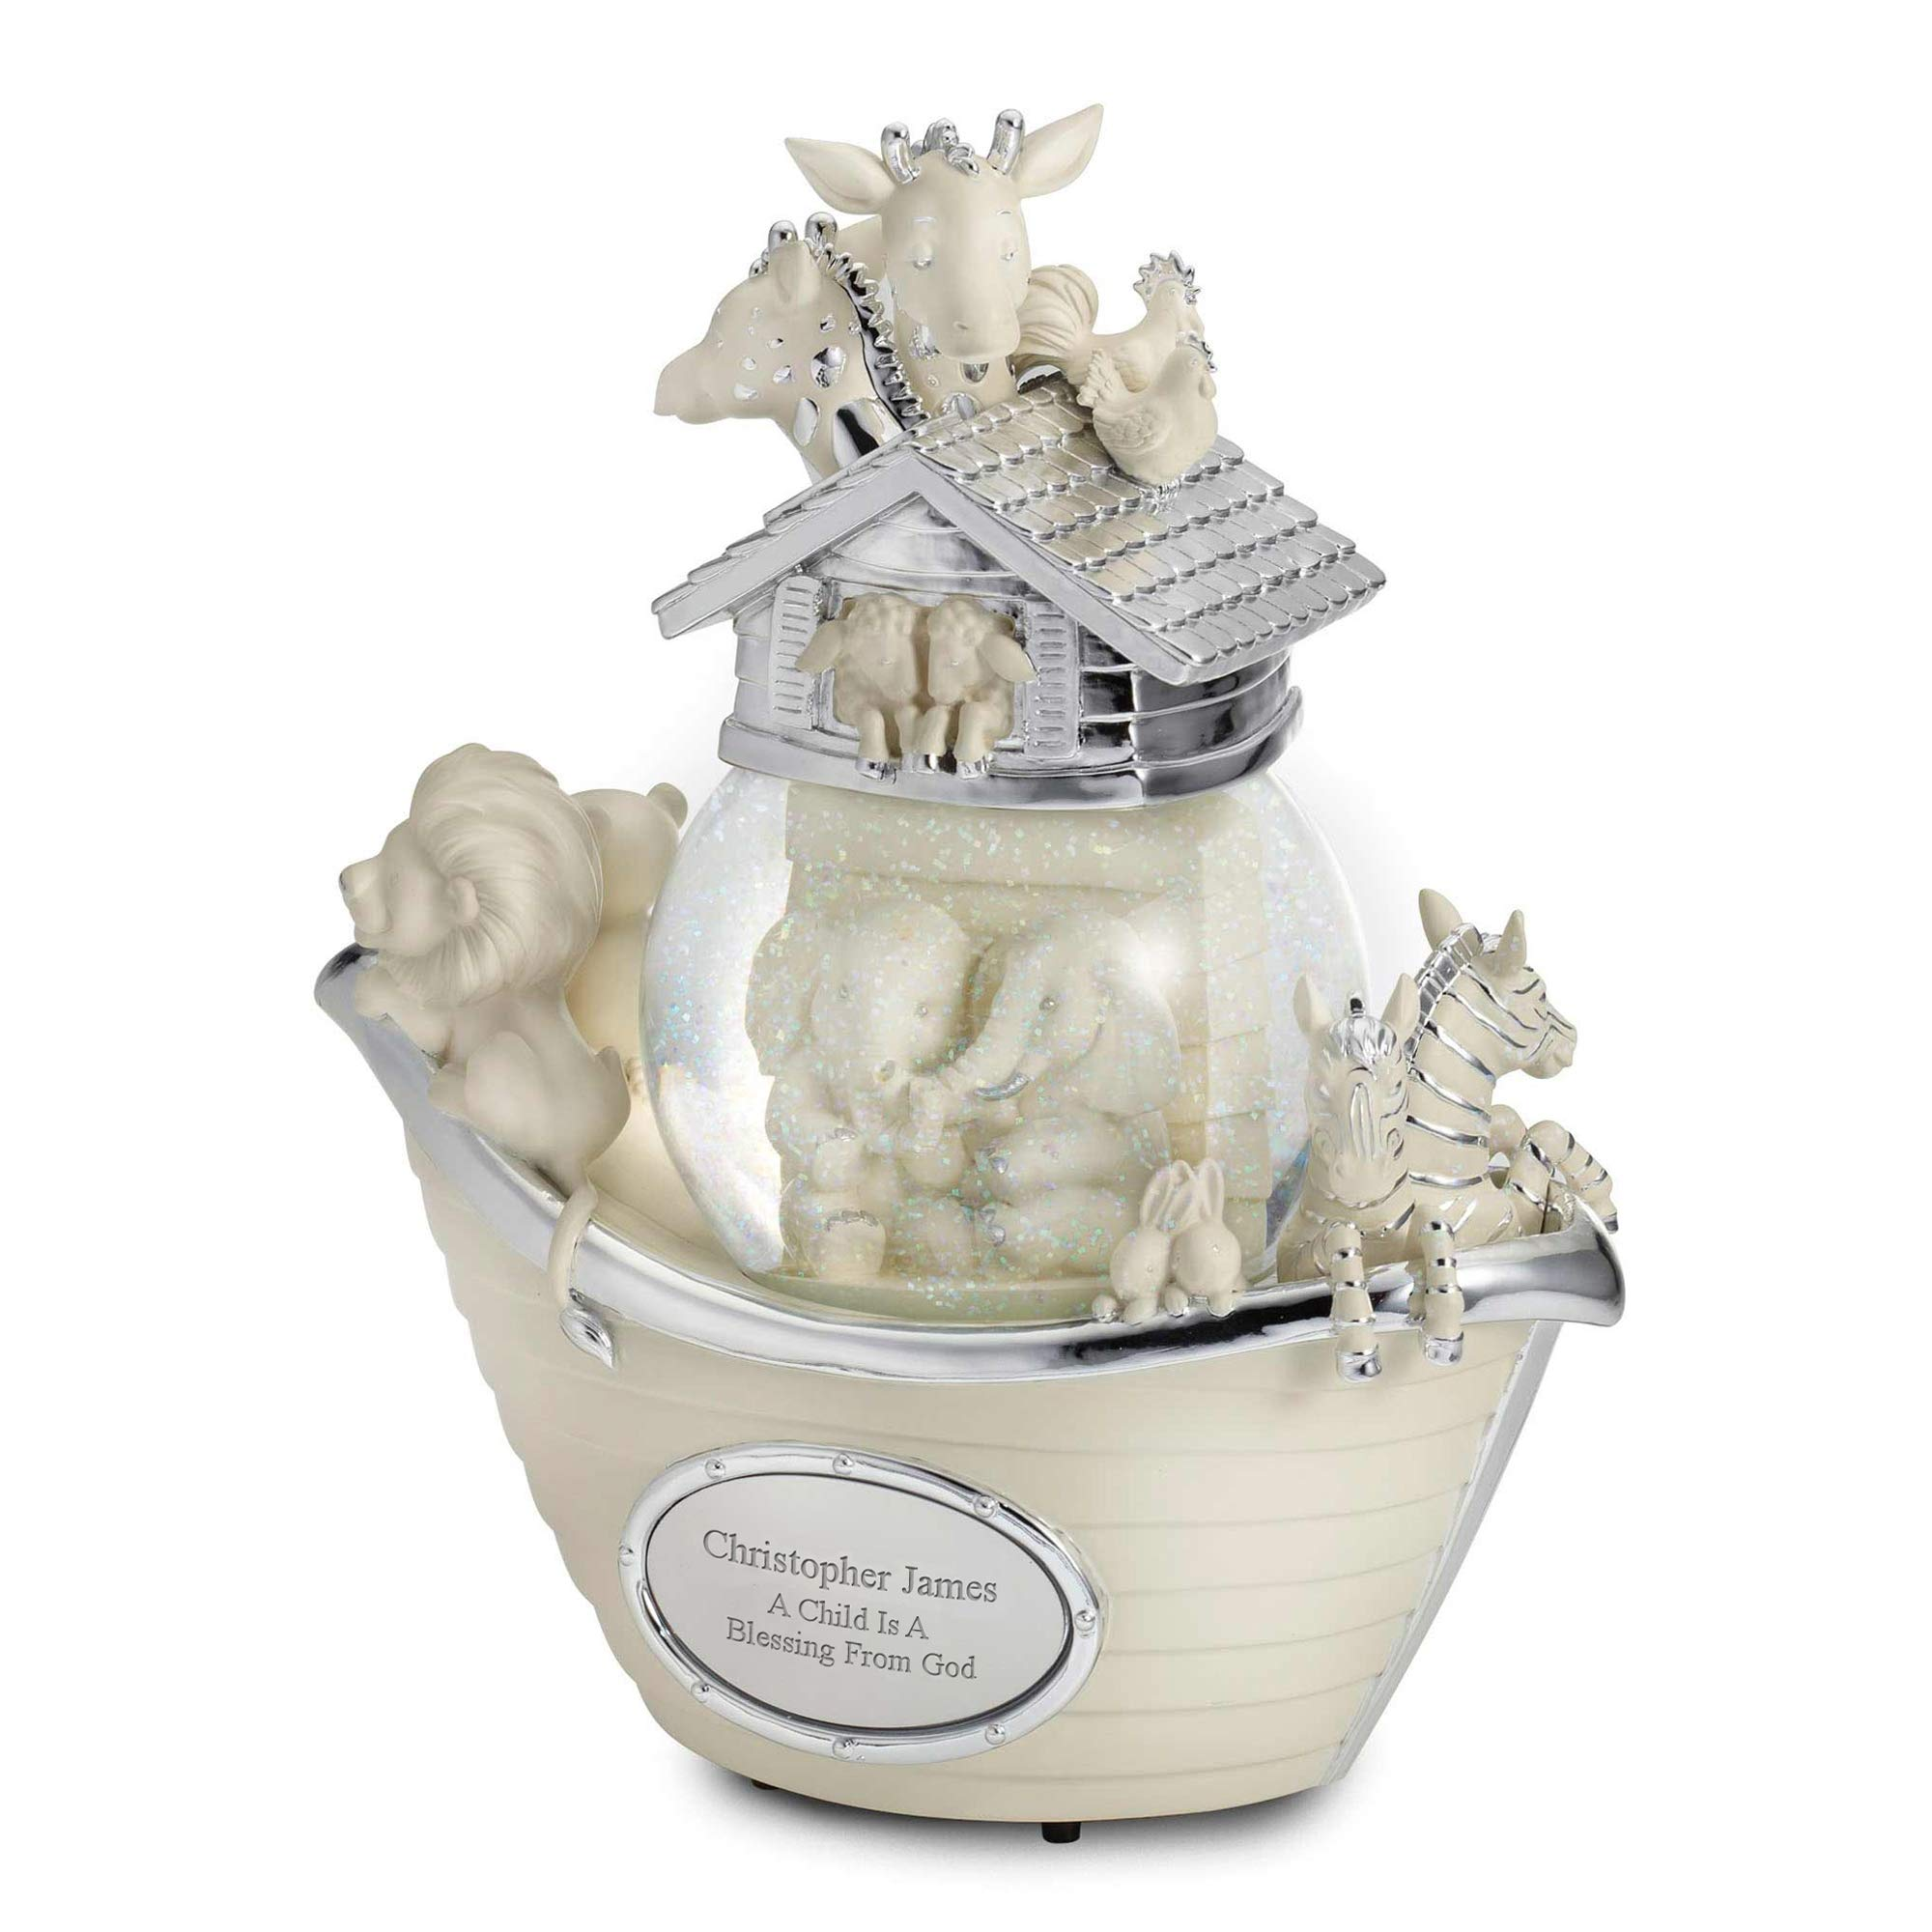 Image of Personalized Noahs Ark Musical Snow Globe for Children